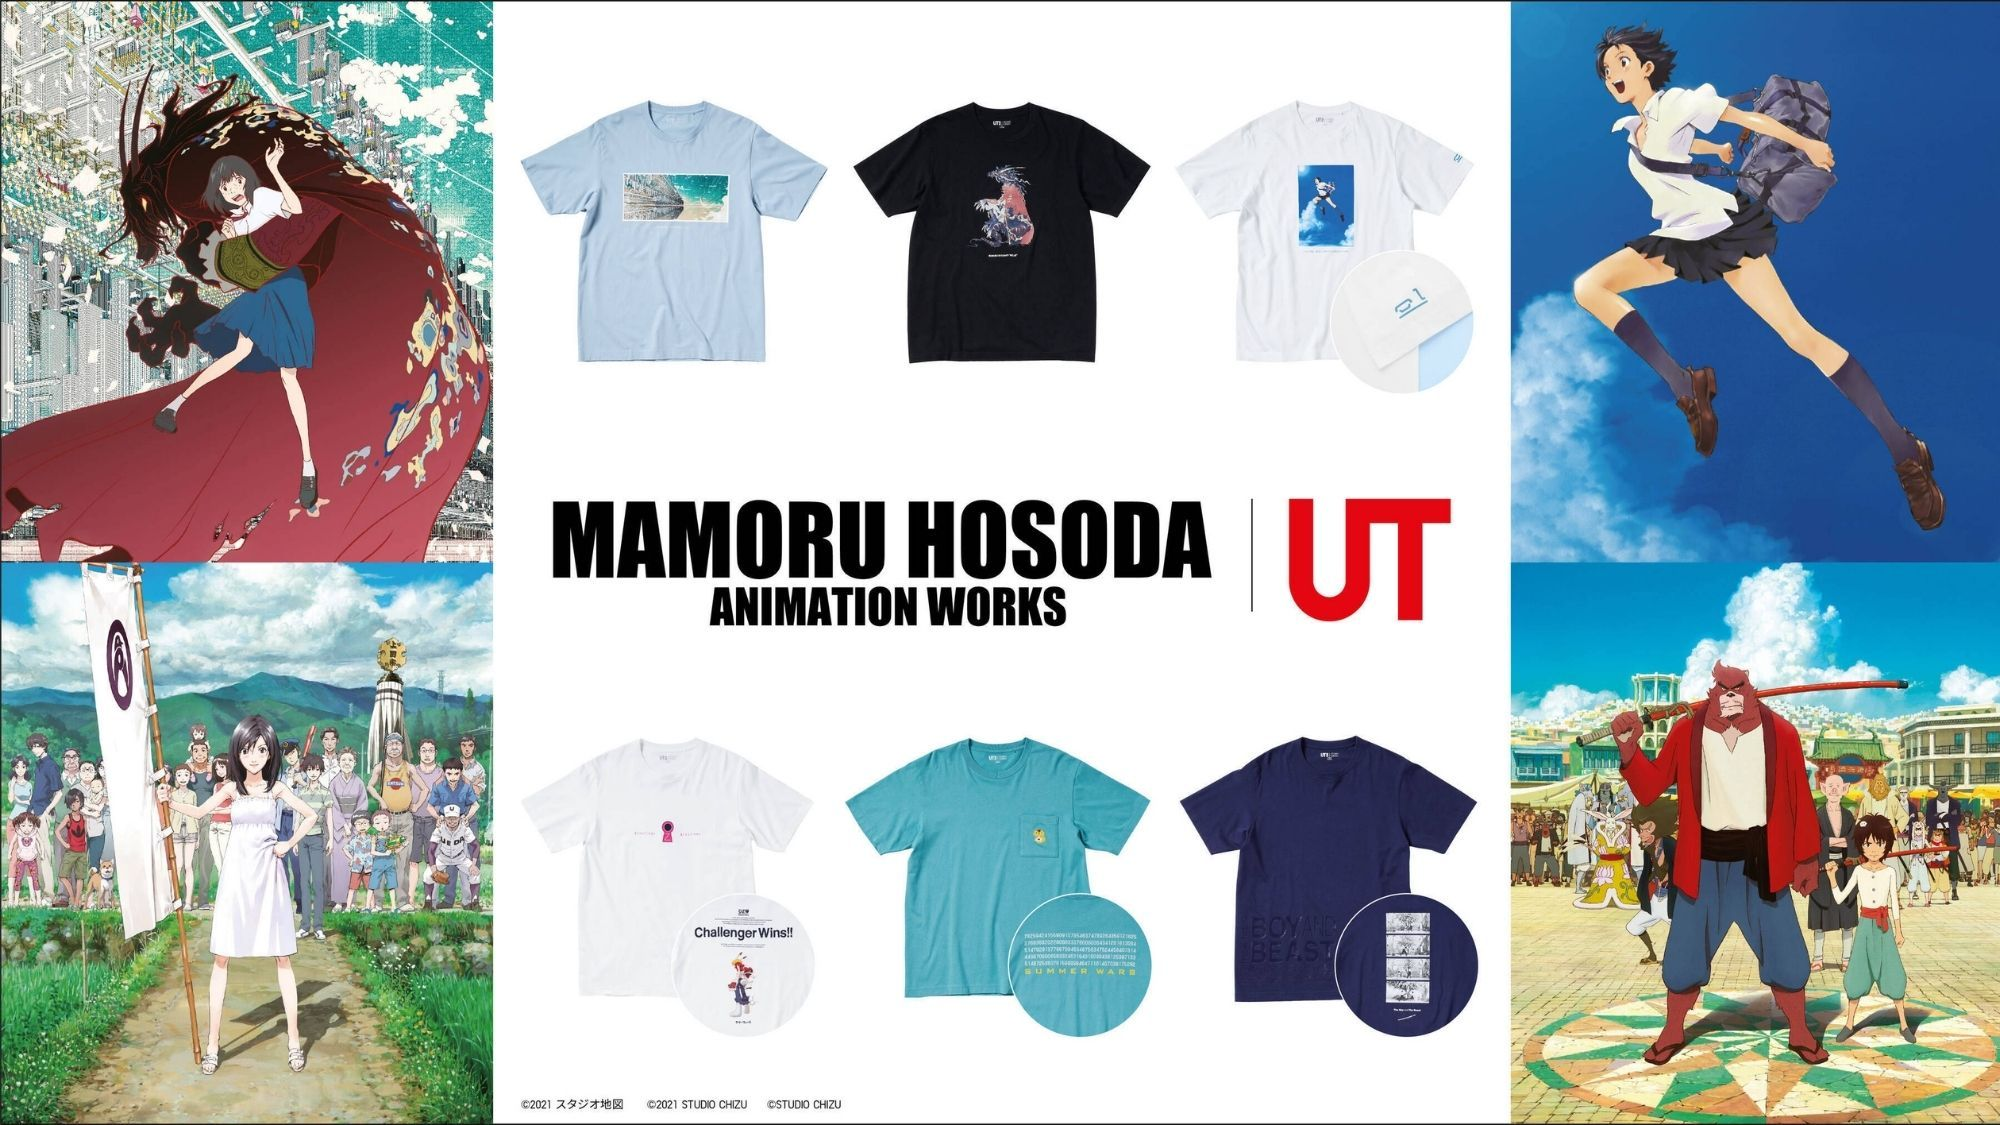 An anime film & UNIQLO concept art collection to watch out for photo from IGN Southeast Asia